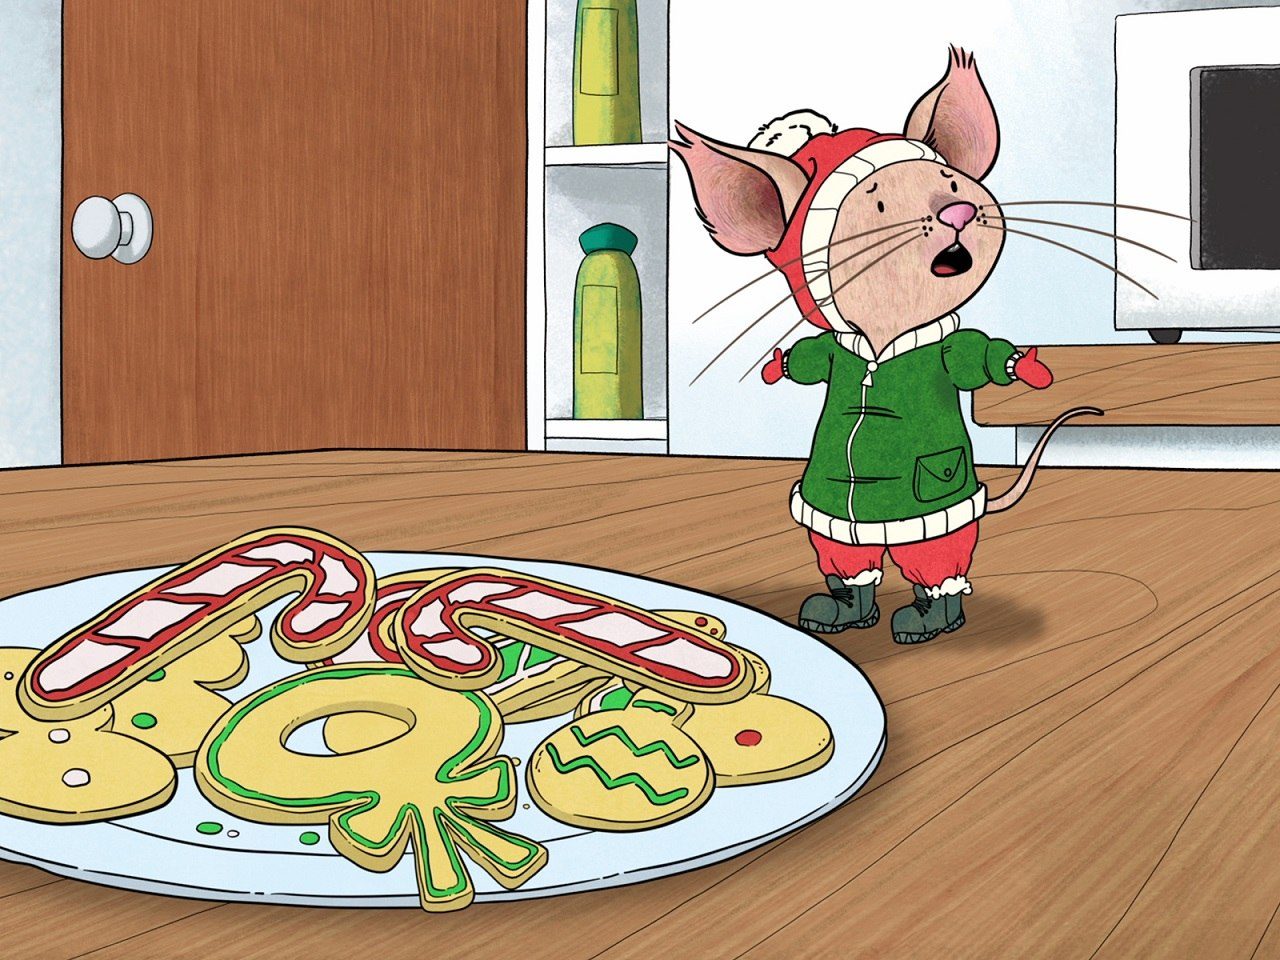 'If You Give a Mouse a Christmas Cookie'